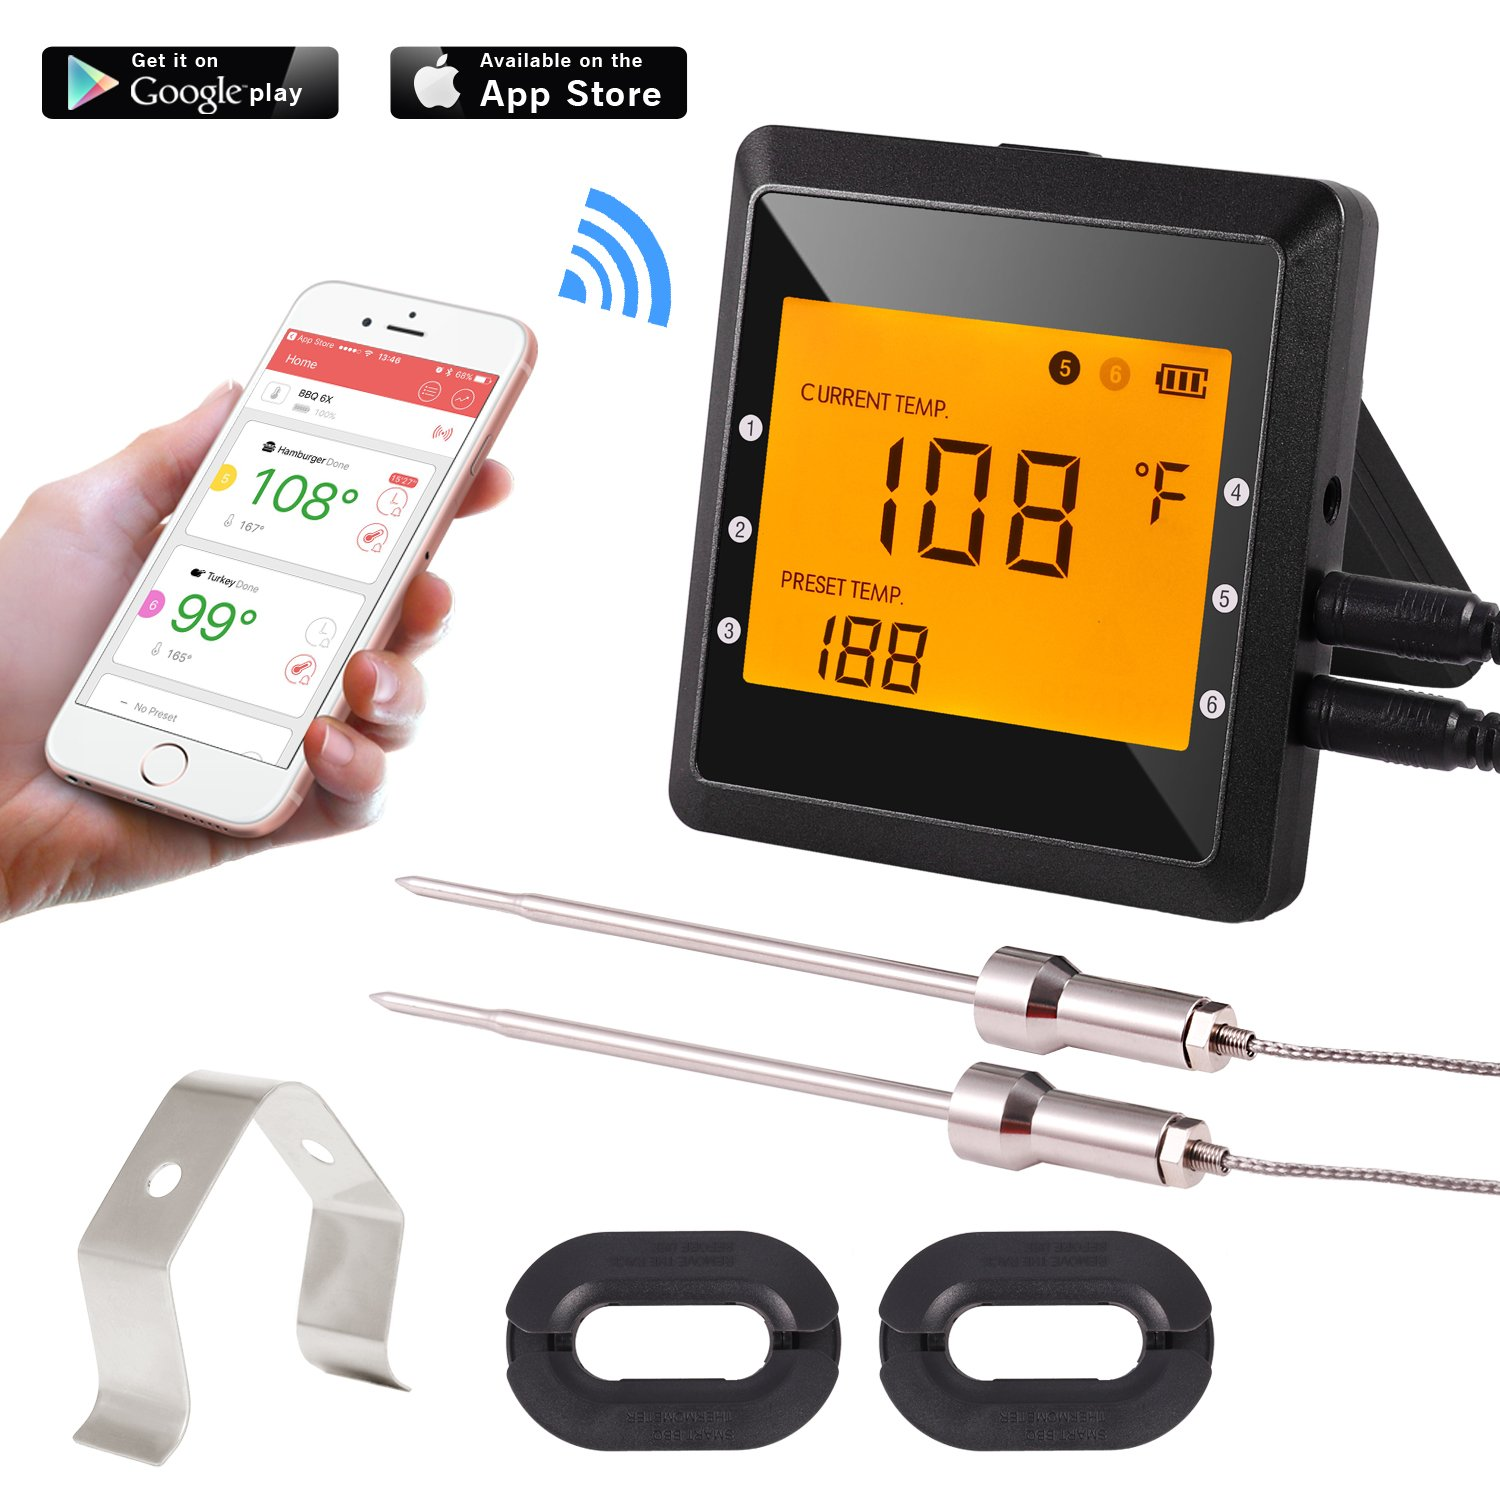 Bluetooth/Wireless Remote Digital Cooking BBQ thermometer Grill Thermometer Meat thermometer for barbecue,Oven,Somker.Large LCD Display Support IOS Android APP 2019s